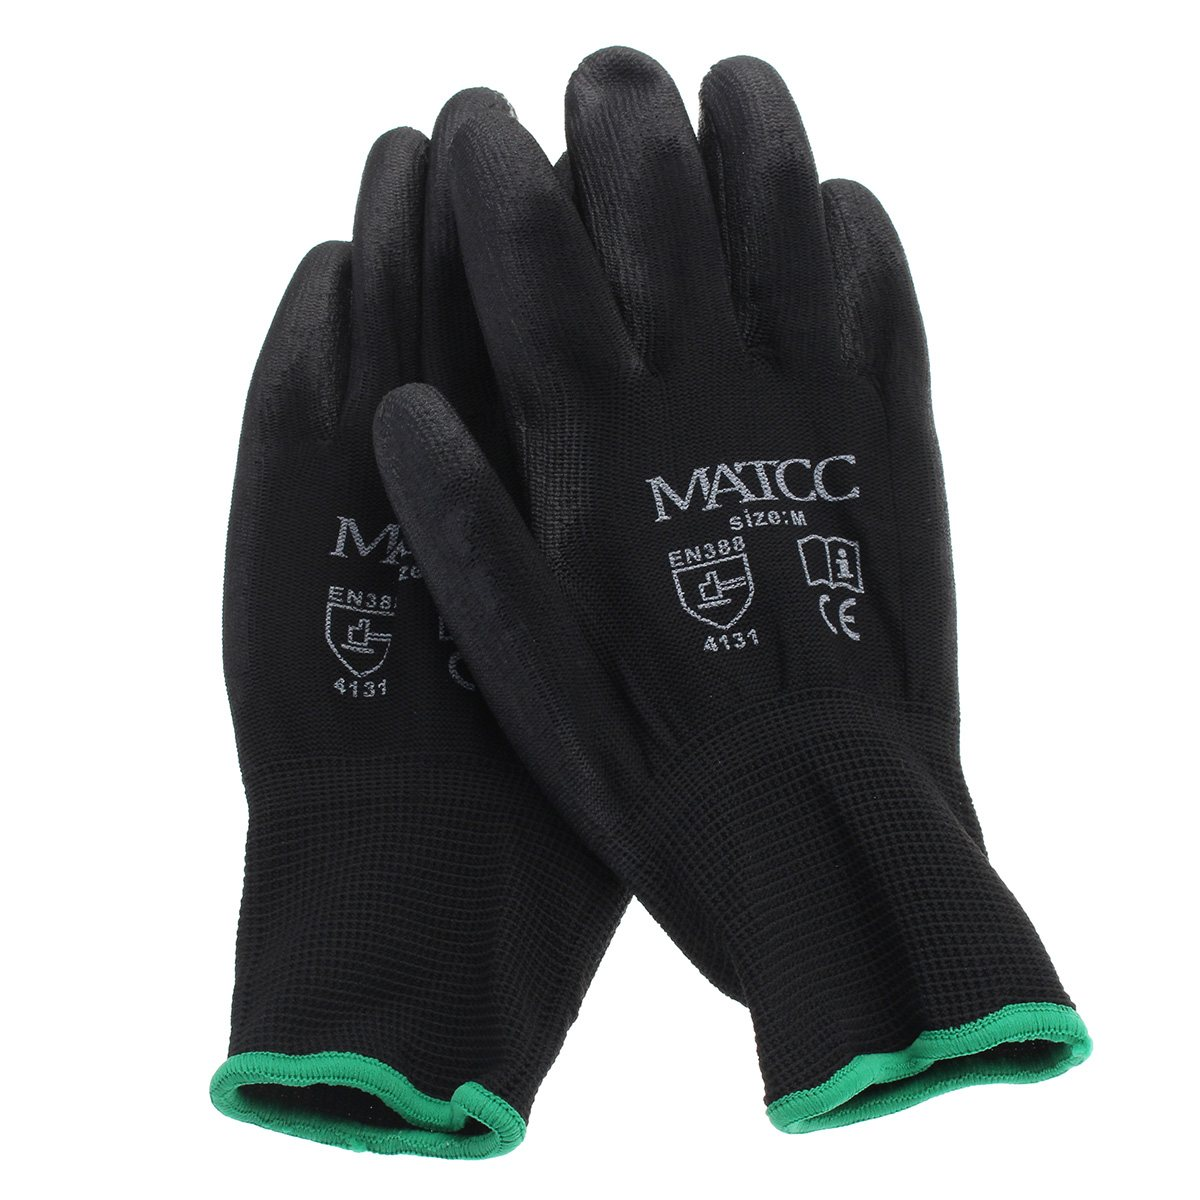 ACCLAIM Bowls Glove Premier All Weather Grip Mens Gents Antislip Synthetic